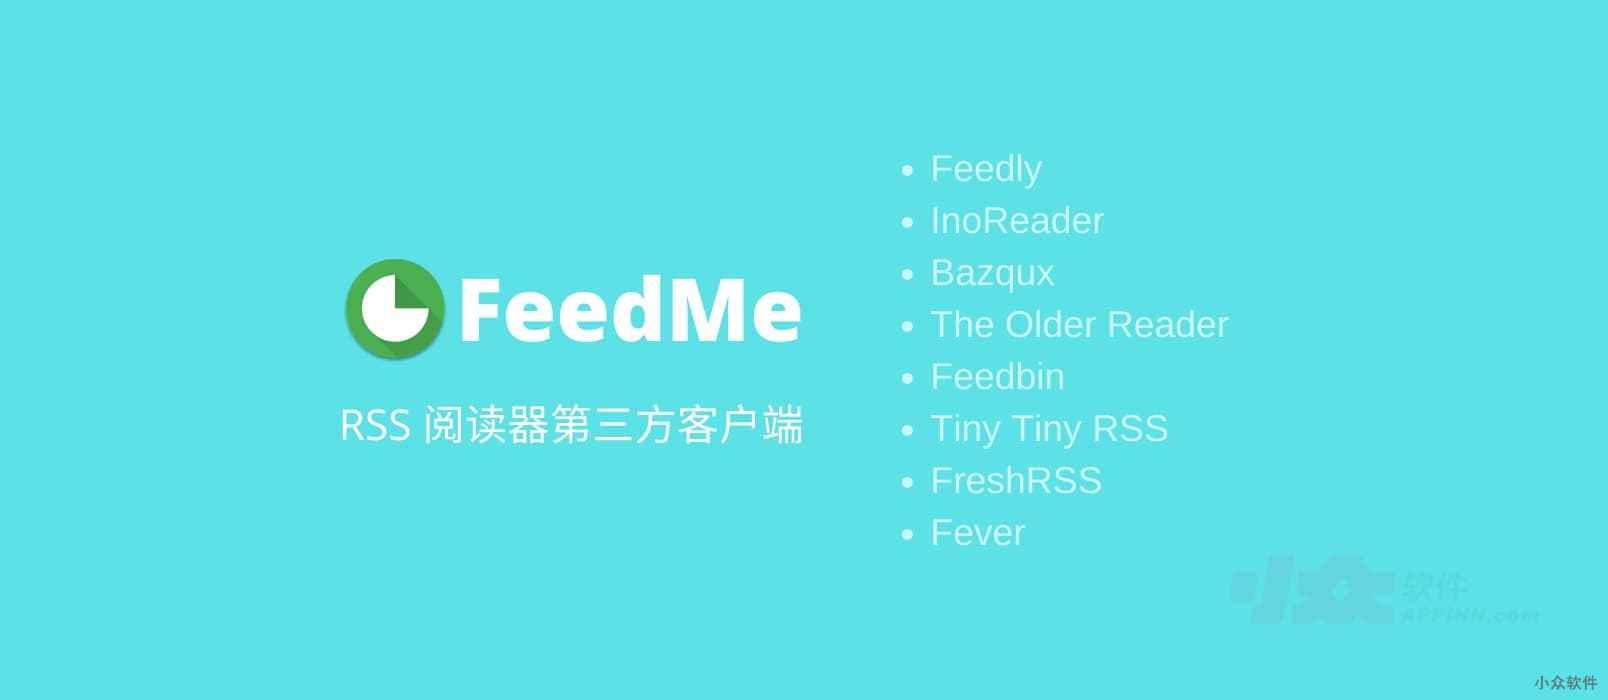 Feedme - 8大 RSS 阅读器第三方客户端[Android] 1